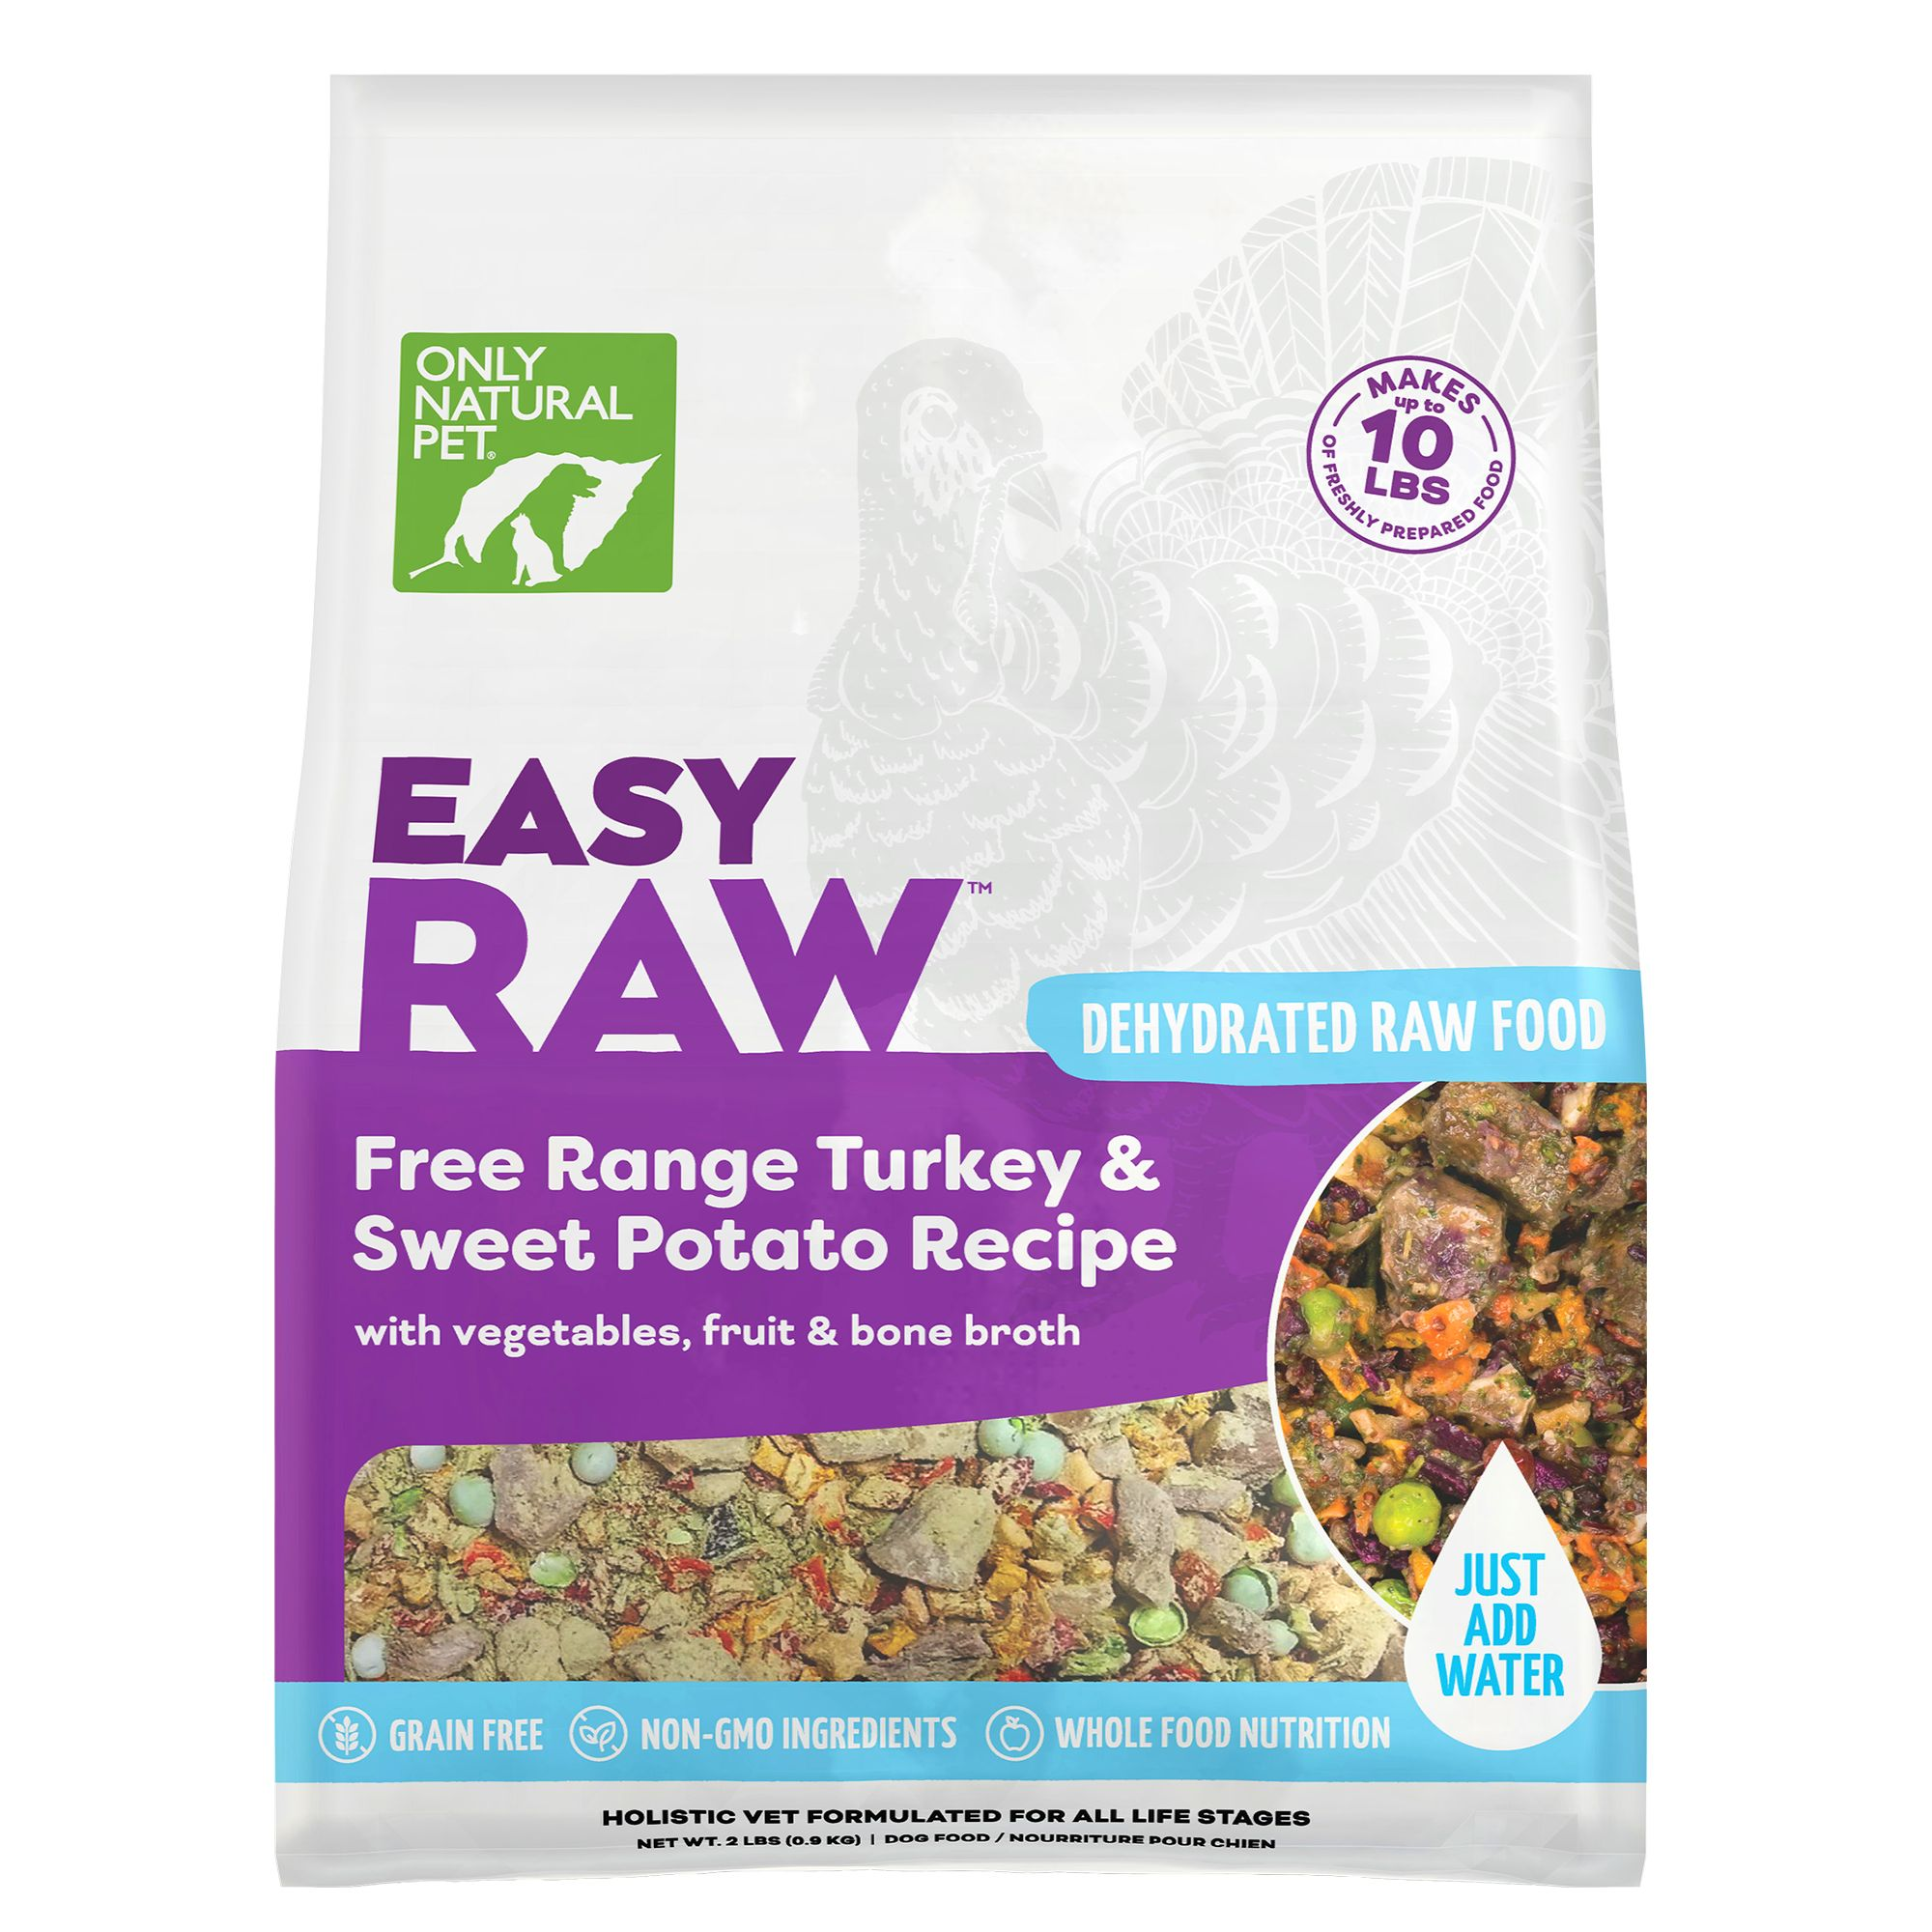 Only Natural Pet EasyRaw Dog Food - Raw, Grain Free, Dehydrated, Turkey and Sweet Potato size: 2 Lb, Raw Dehydrated Dog Food, All Life Stages, 999245